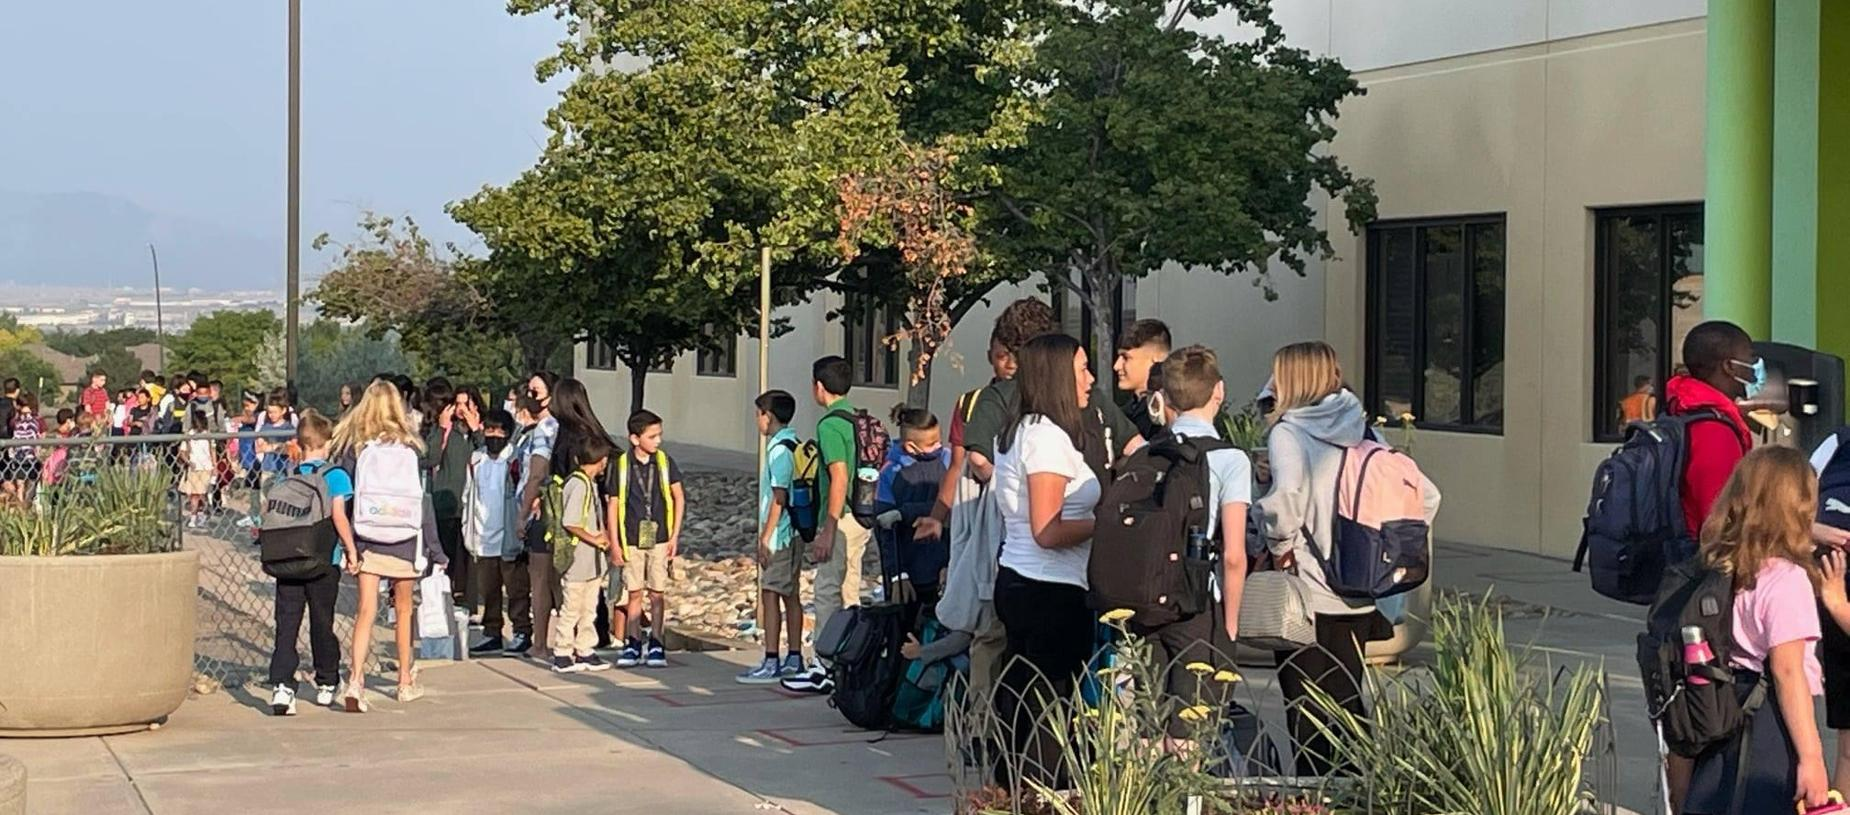 Students Lining Up Ready for their First Day of School 2021-2022!